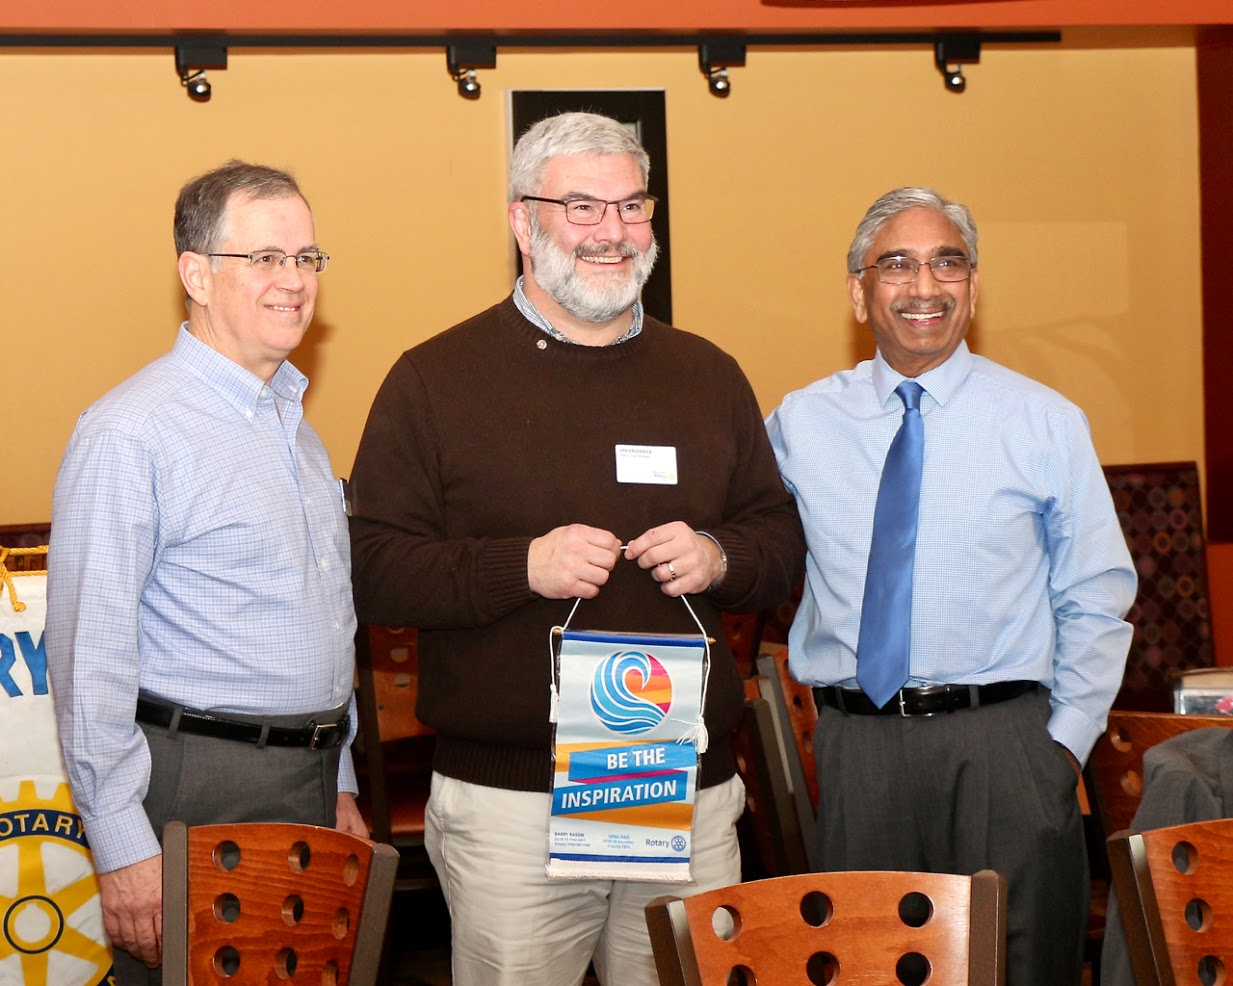 Dale Grabel, AG, and Venu Rao, District Governor, stand on both sides of  our President-elect, Jon Frederick, shortly after Venu presented Jon with a